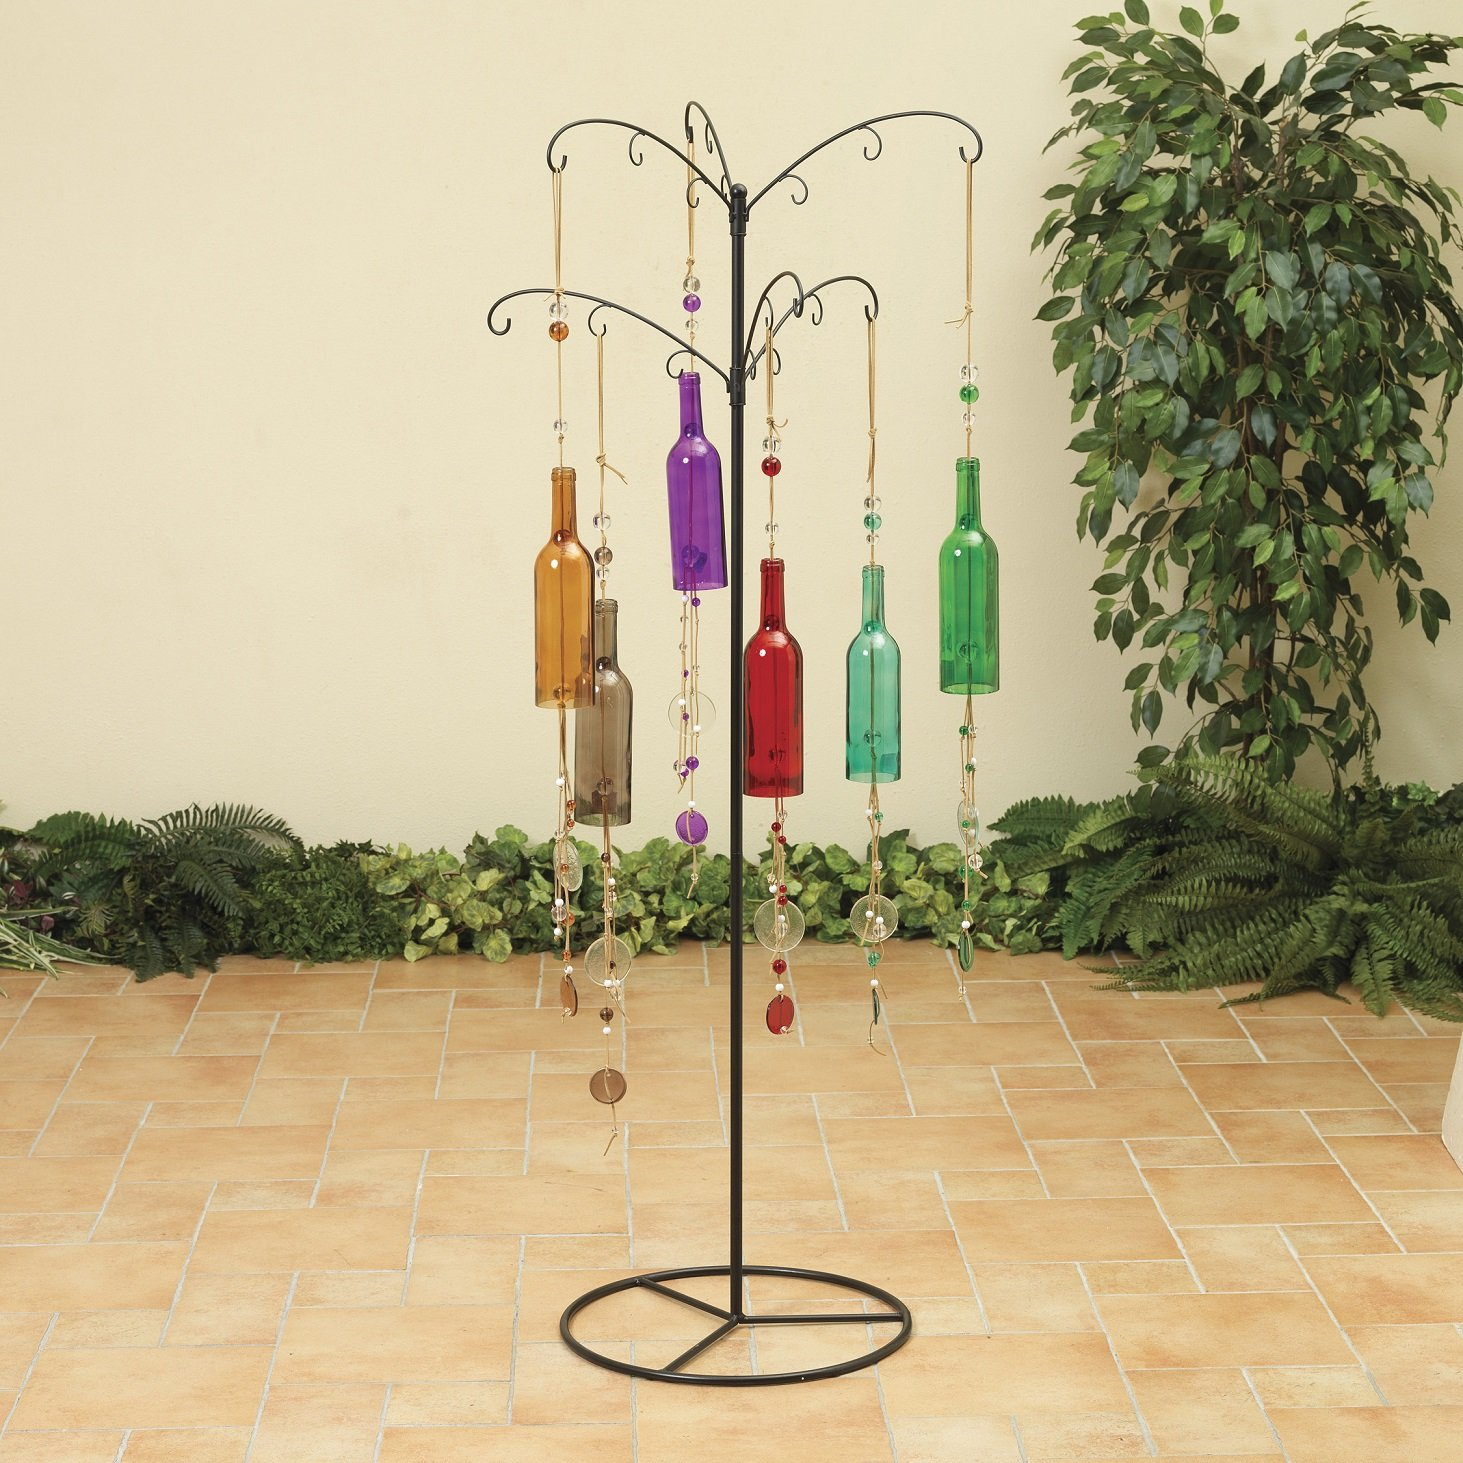 59in Garden Standing Metal Display Tree 18 Glass Bottle Wind Chimes Decoration